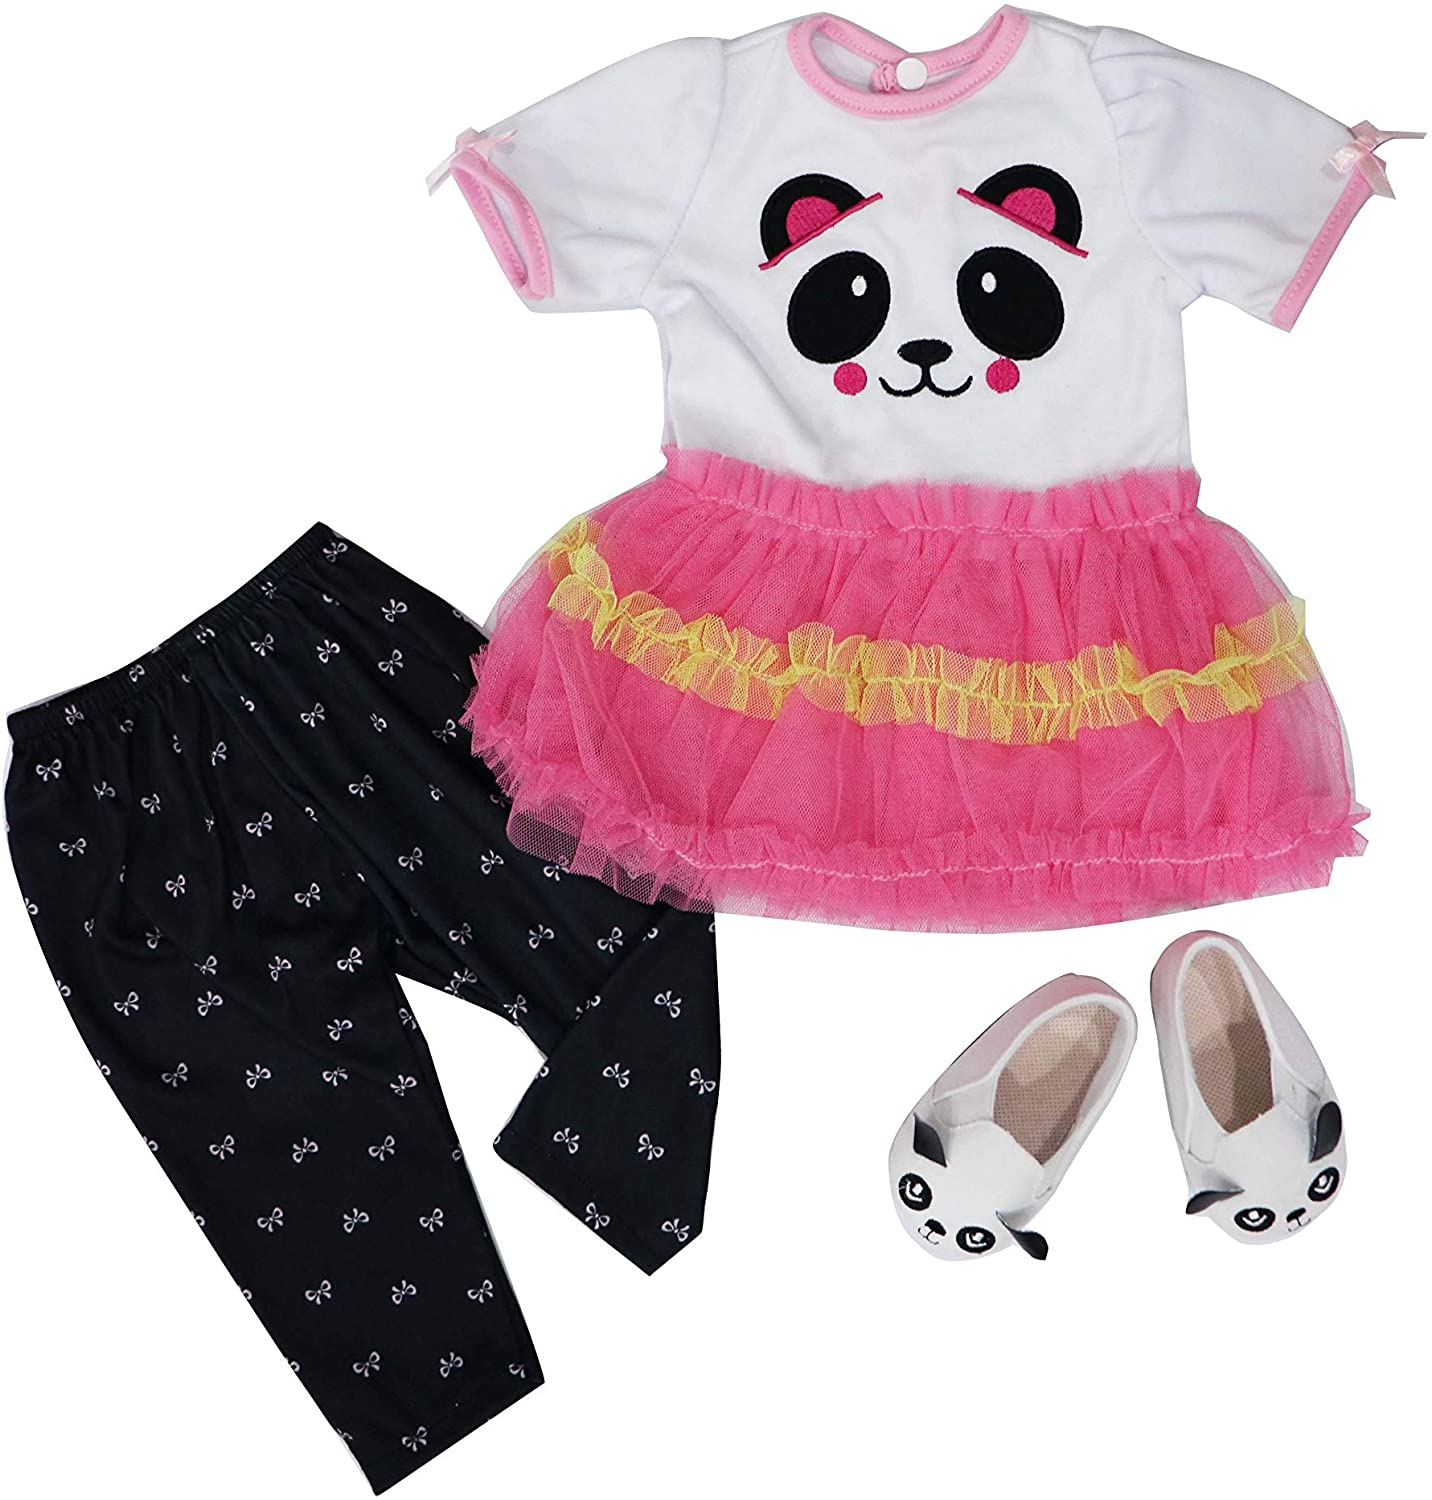 Charm Baby Reborn Baby Dolls Clothes for 22-24 inch Panda Outfit Accessories 4 Piece Handmade Doll Clothes fit for Toddler Girl Dolls Accessories Handmade Embroidered Panda face Patent Shoes!